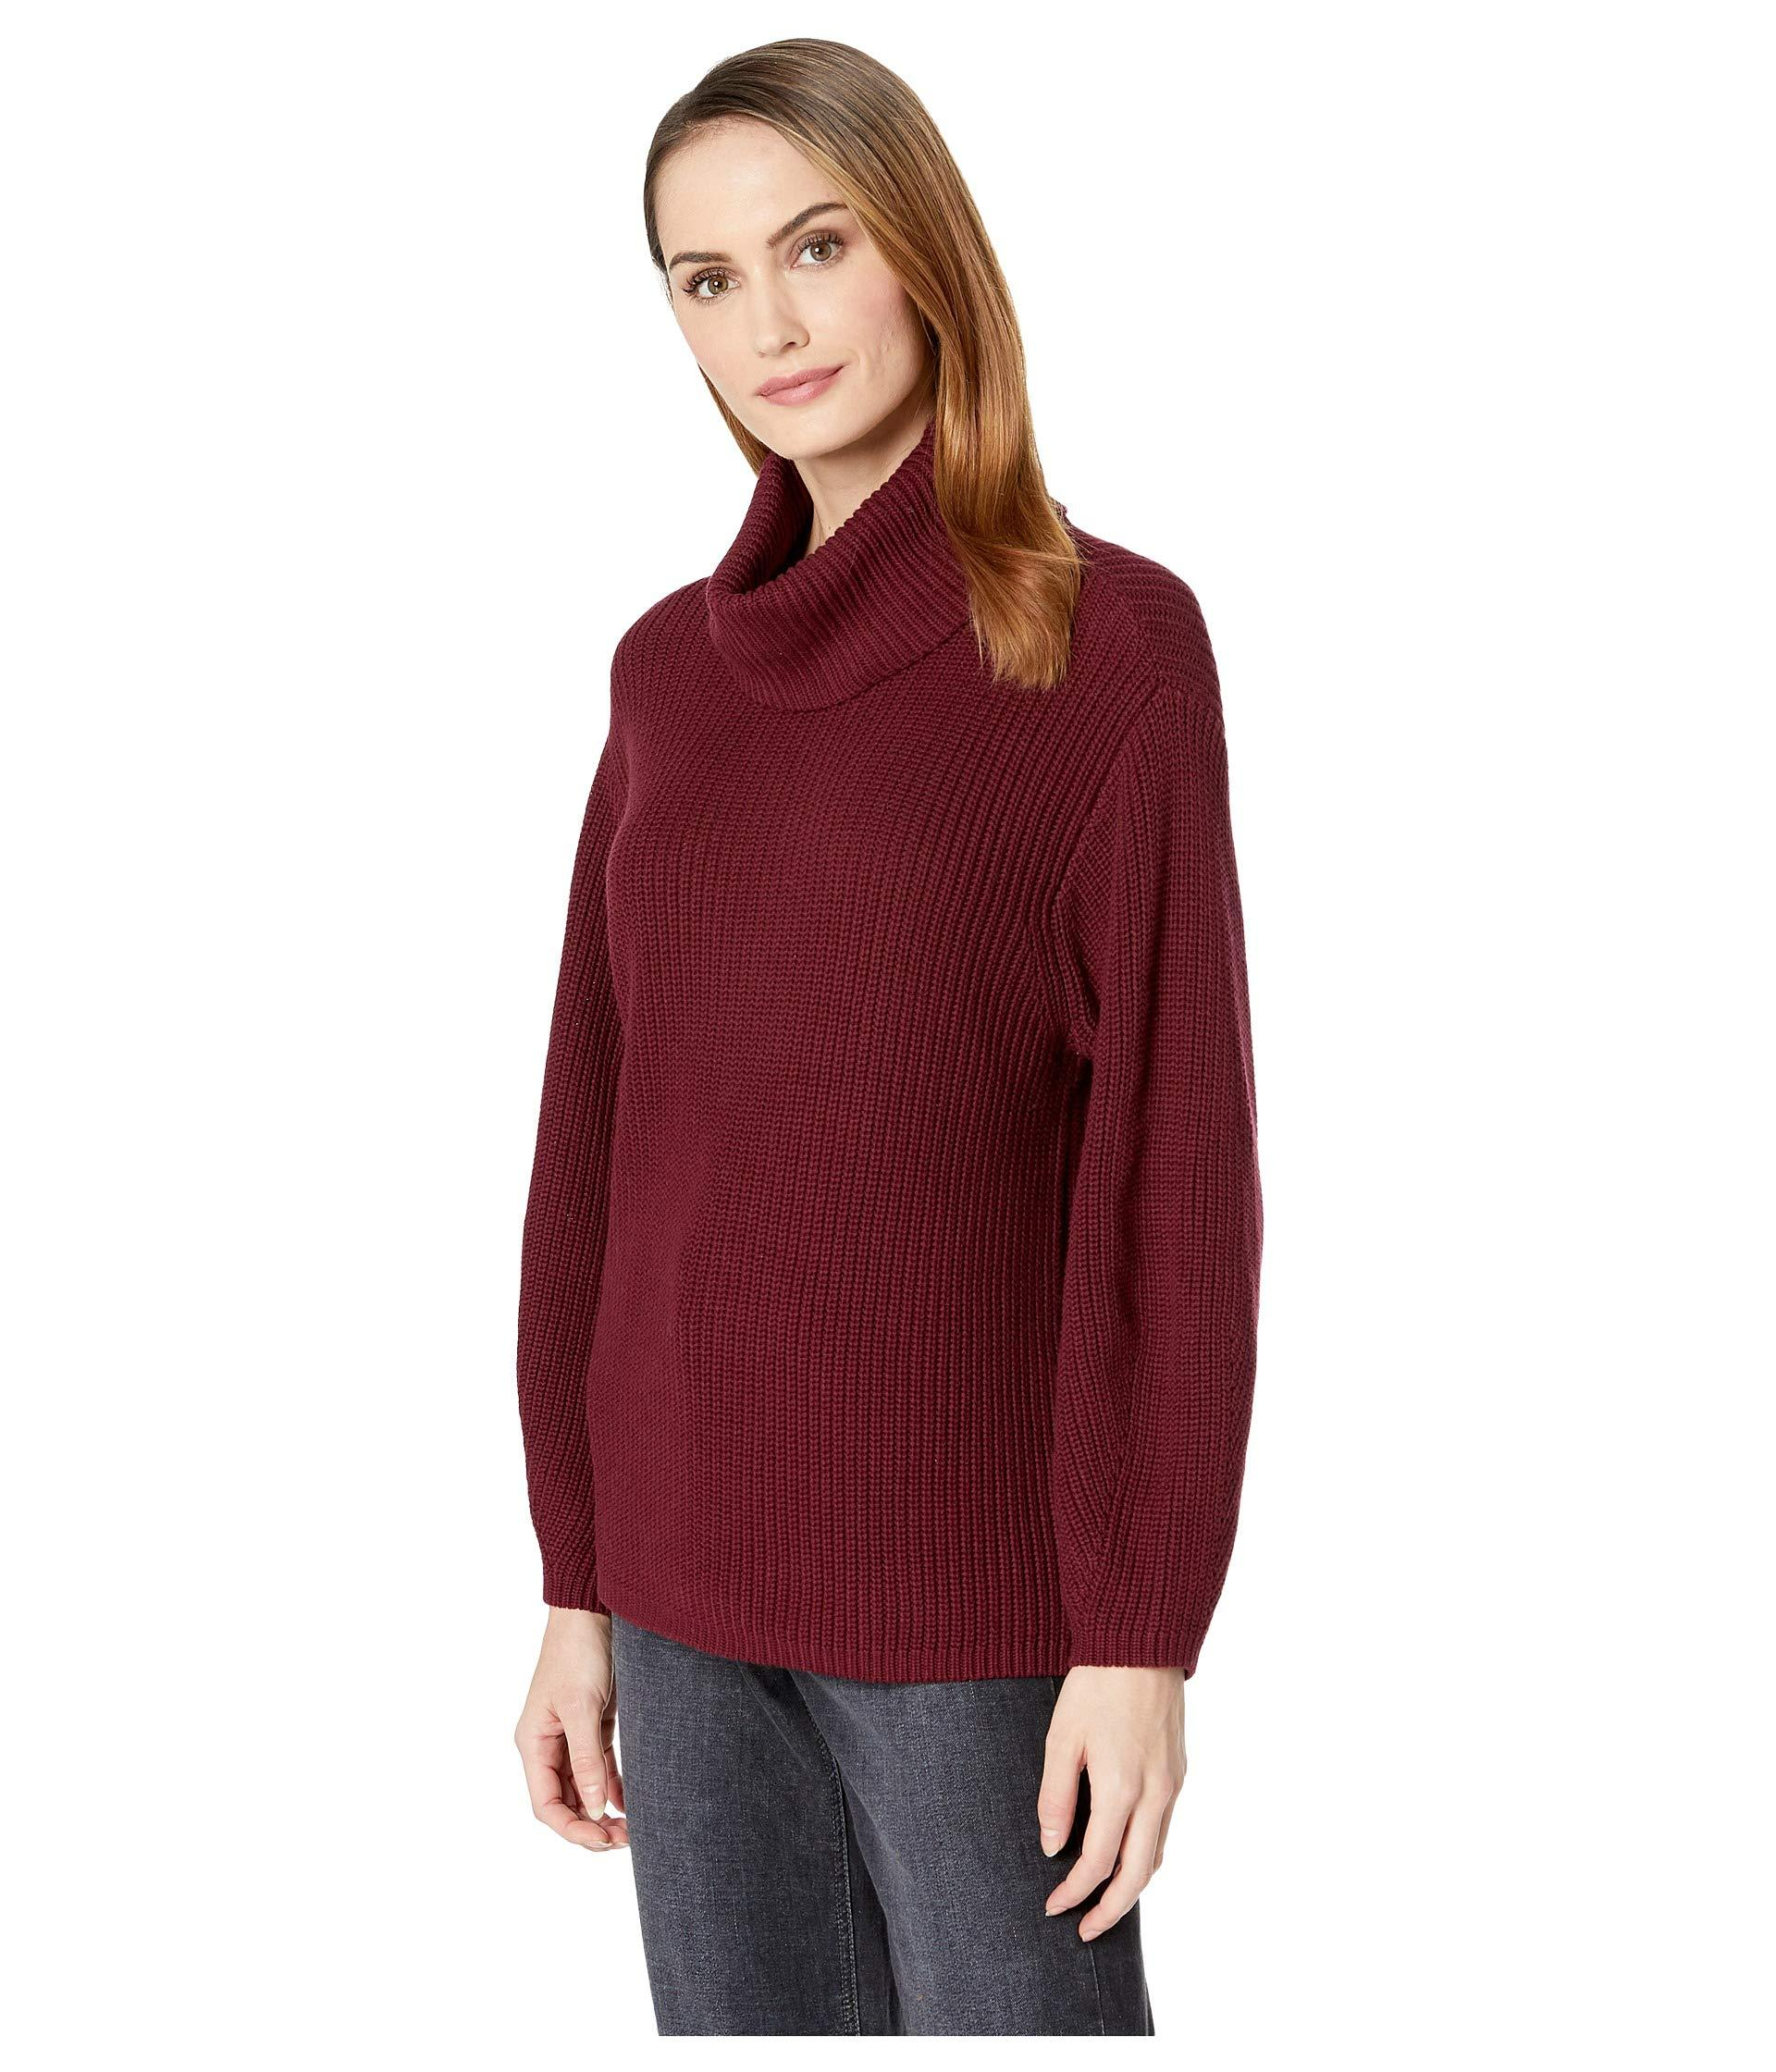 5bec6c30c6f Lyst - Vince Camuto Long Sleeve Rib Turtleneck Slouchy Sweater in Red -  Save 41%